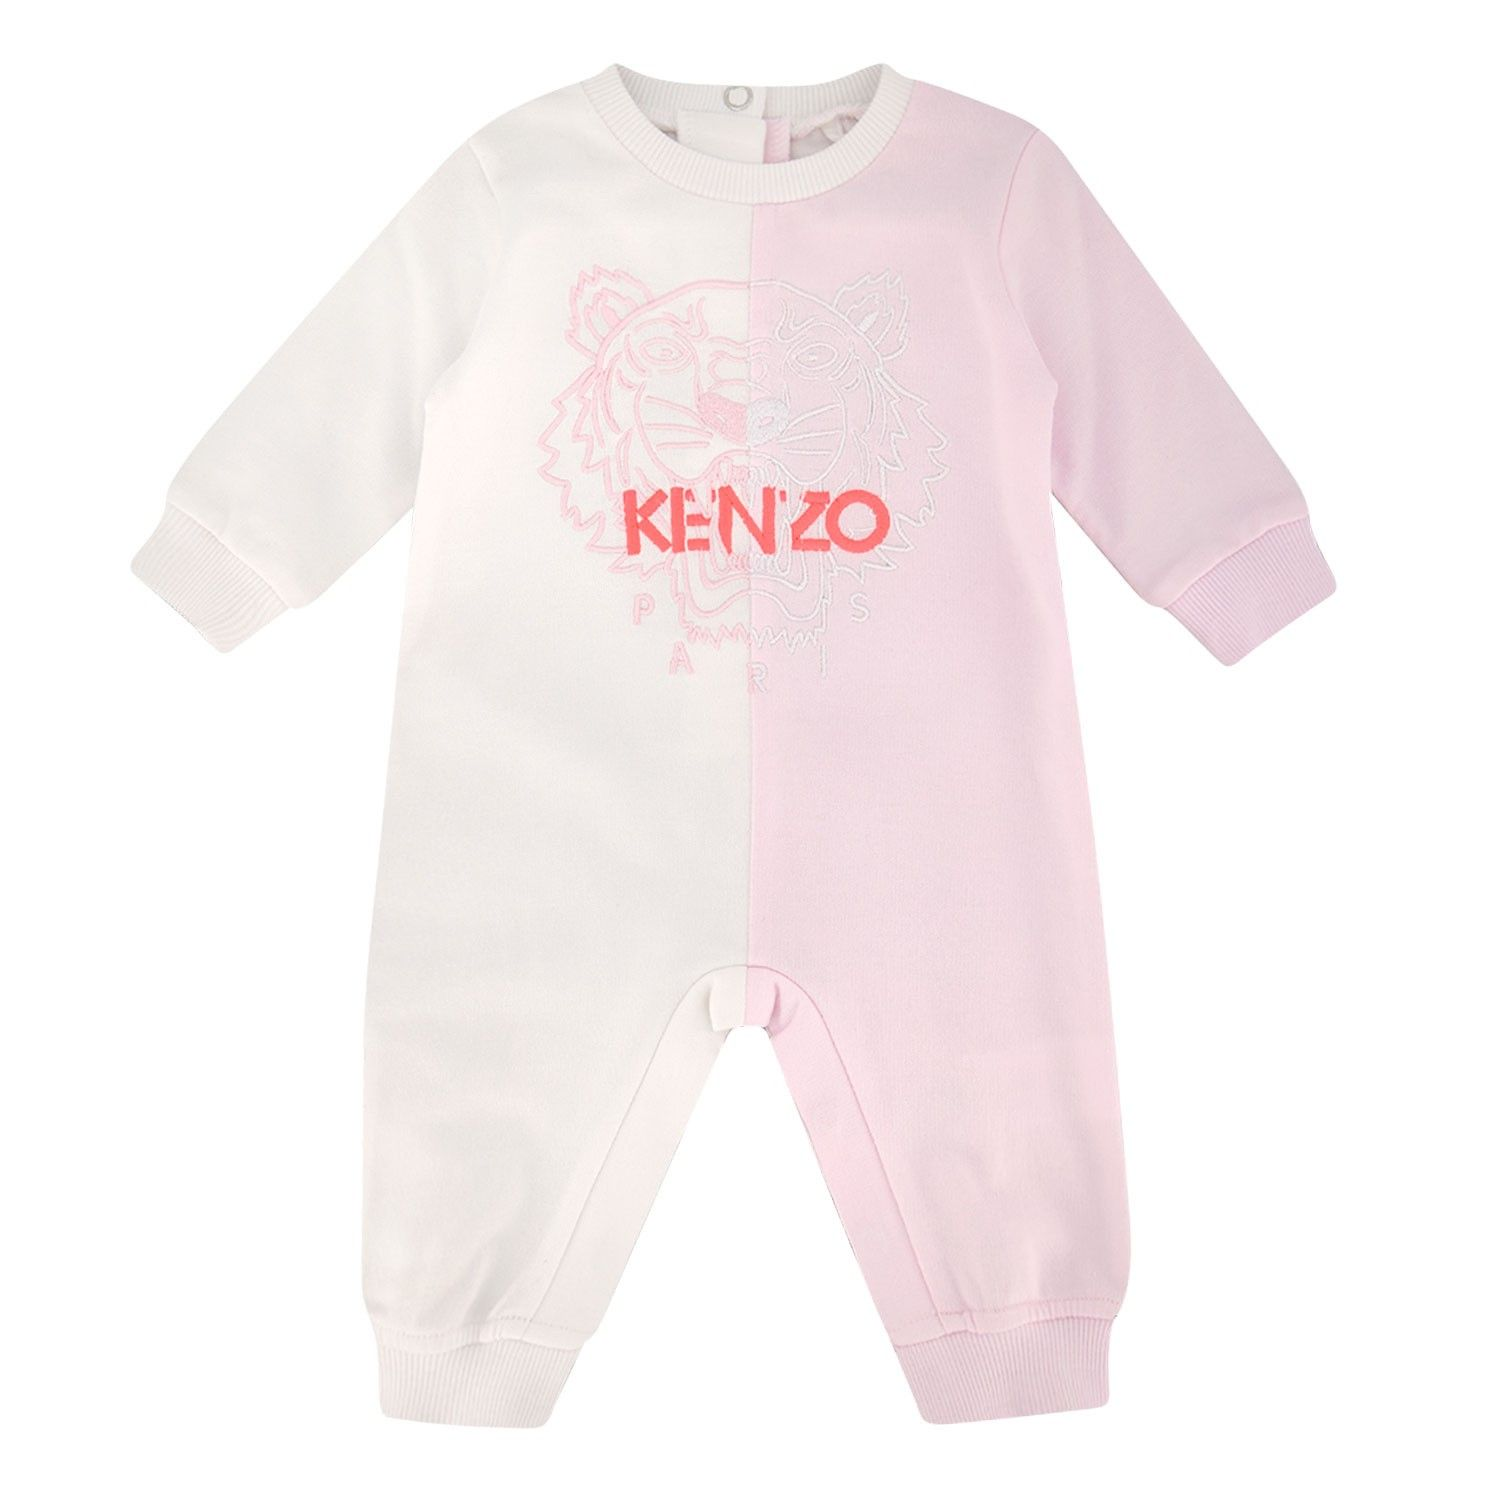 Picture of Kenzo 32013 baby playsuit light pink